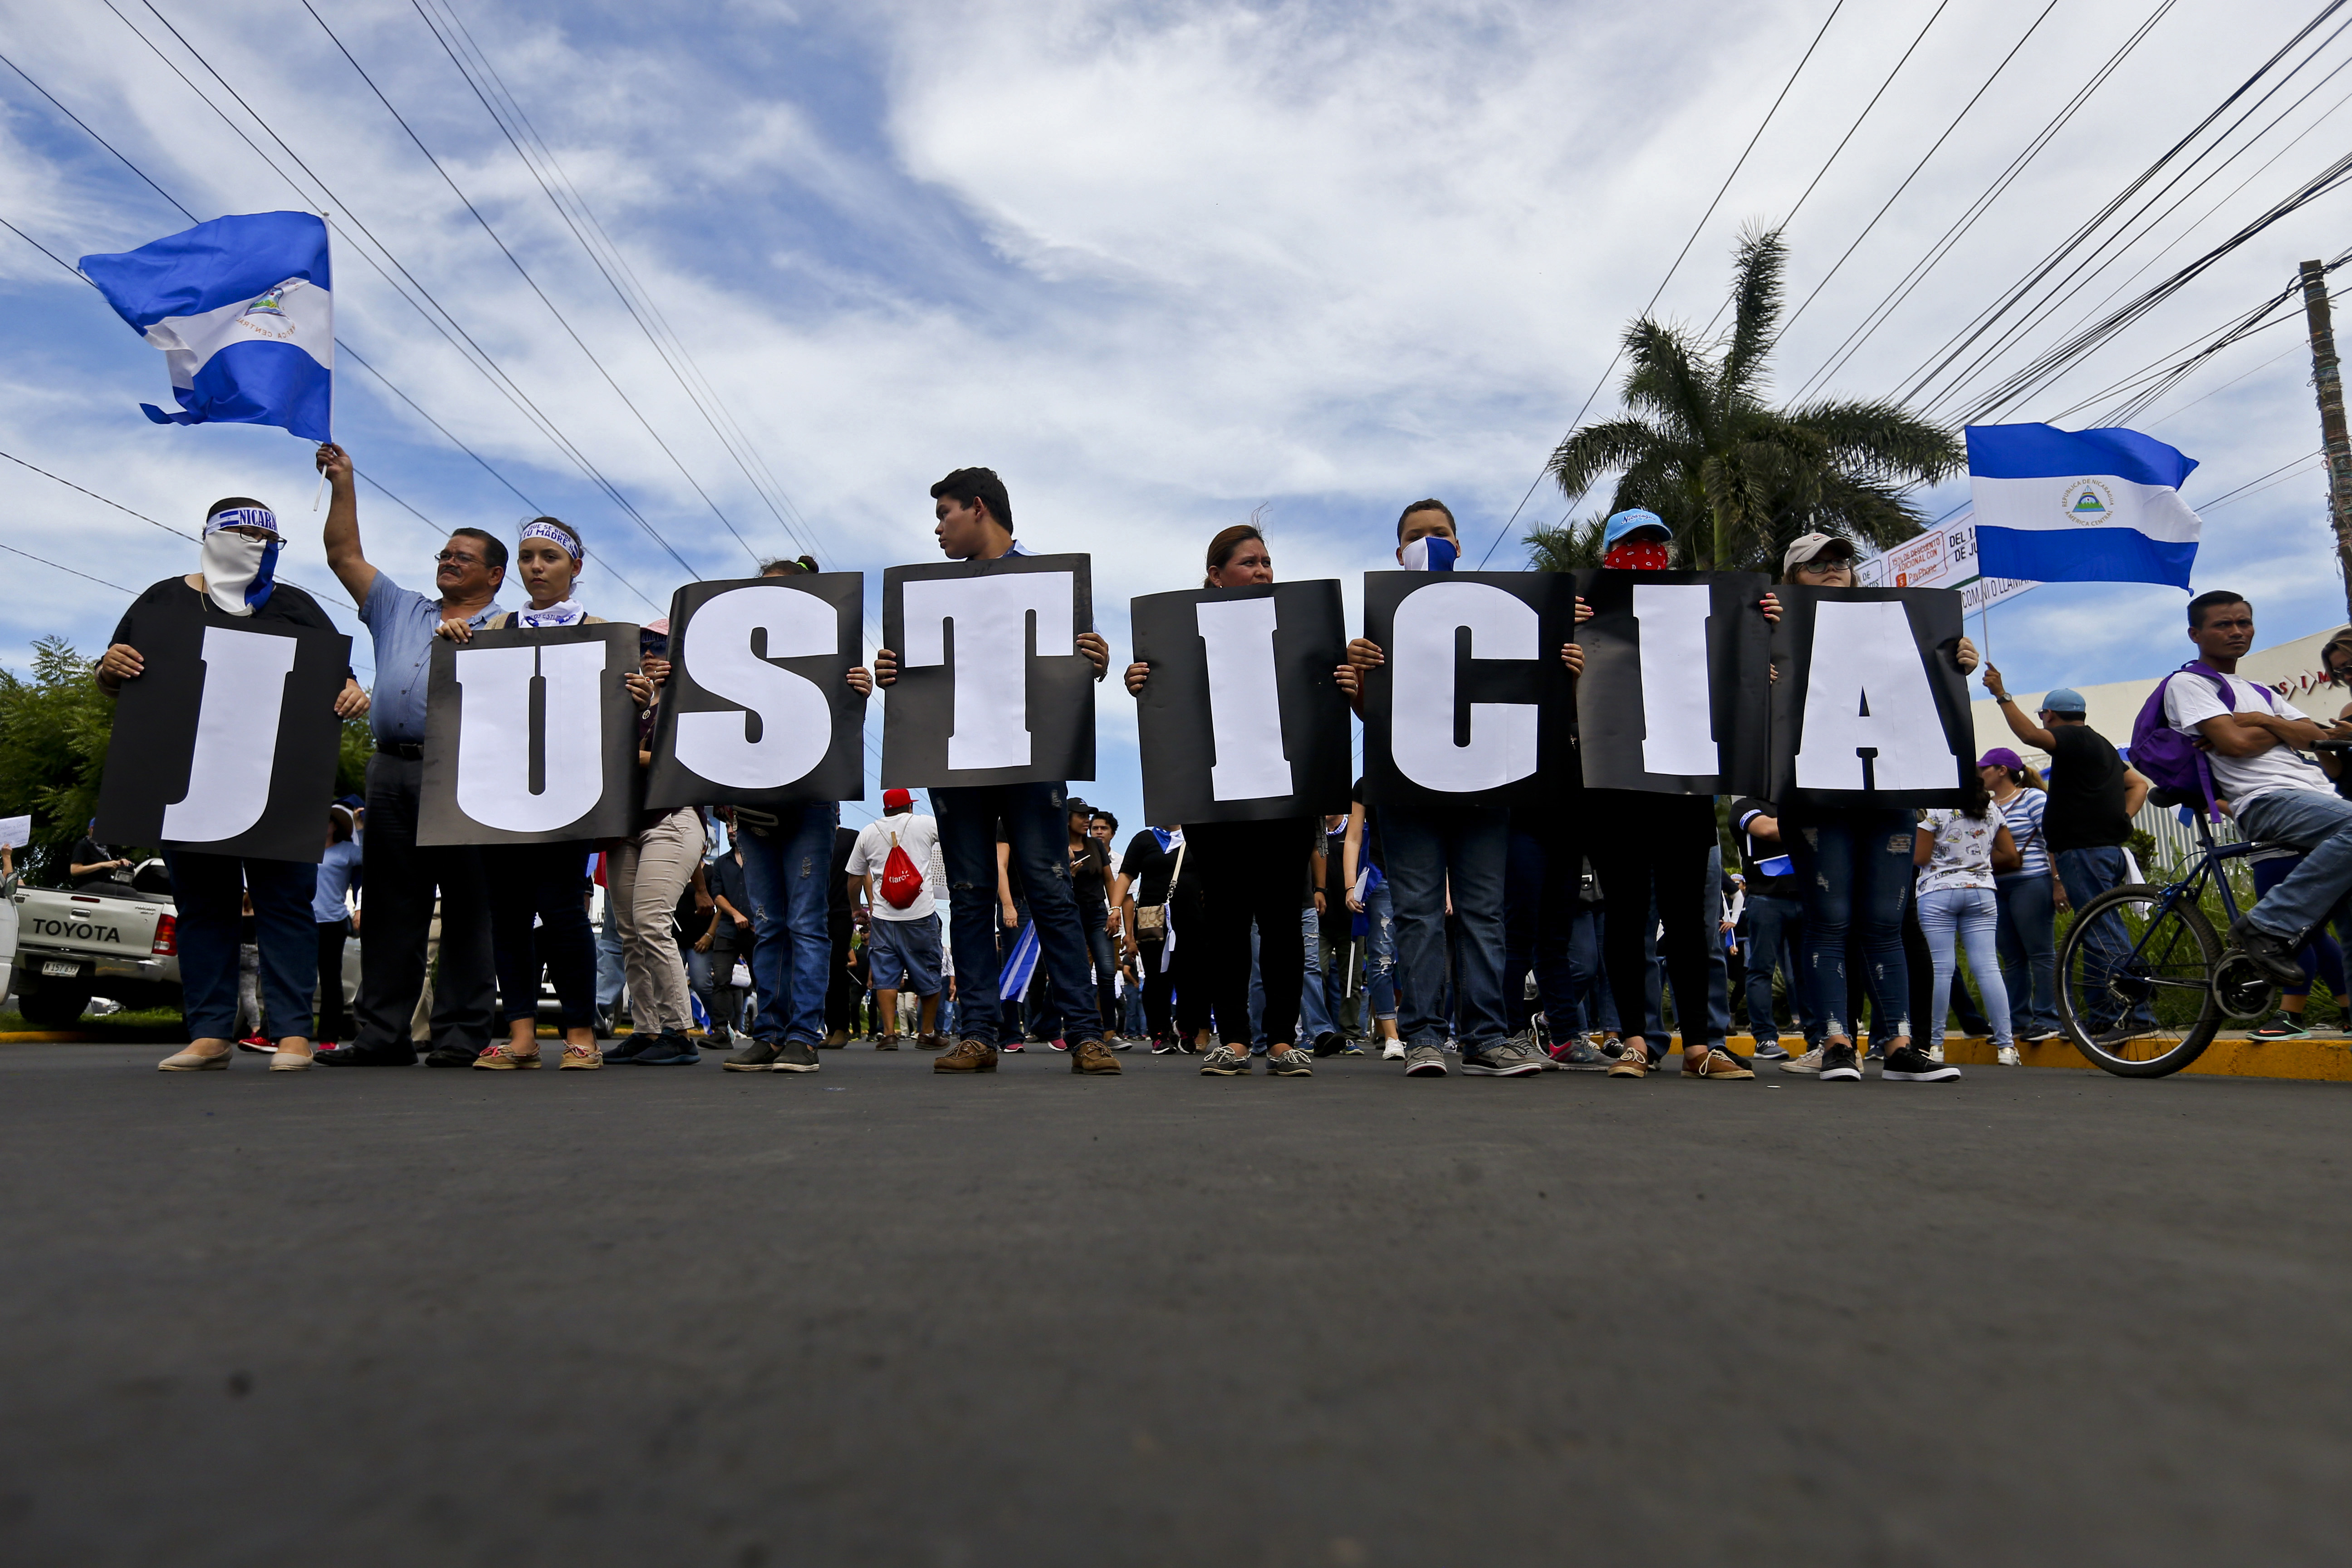 """In this May 30, 2018 photo, anti-government protesters carries letters that form the Spanish word for """"Justice"""" during a march against the government of Nicaragua President Daniel Ortega, and his wife Vice President Rosario Murillo in Managua, Nicara..."""